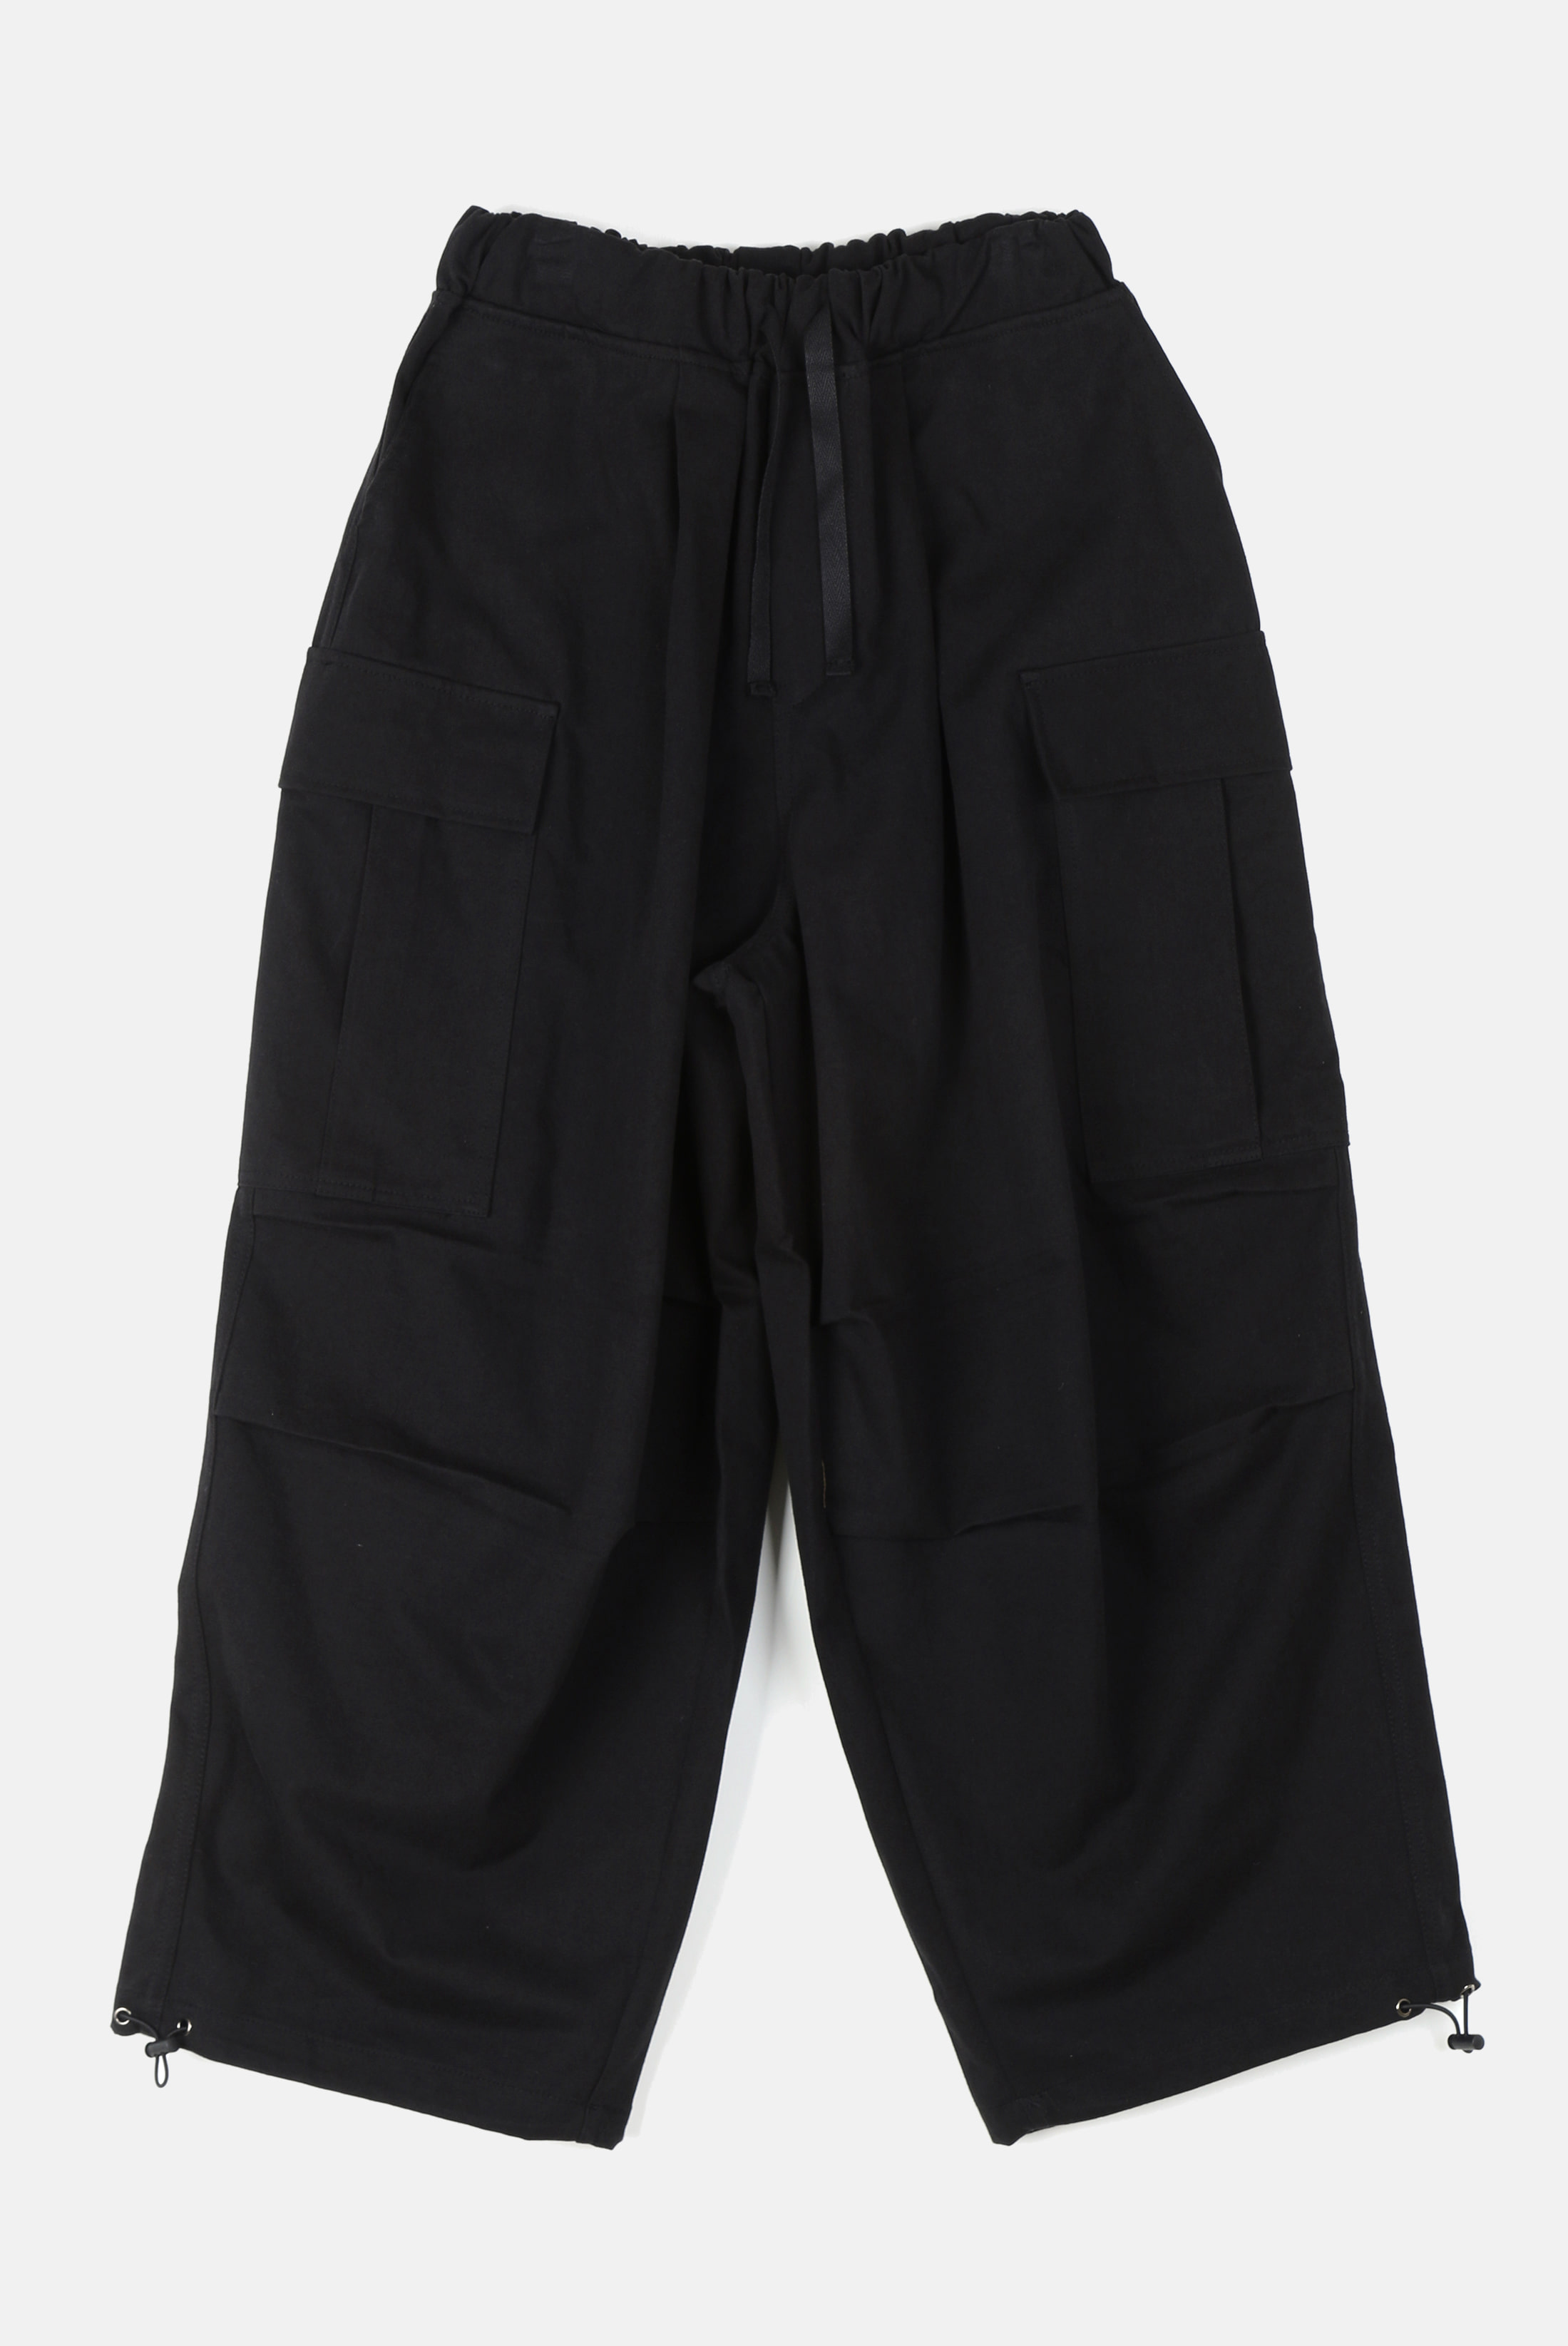 Hard_Cotton Ballon_String_Pants